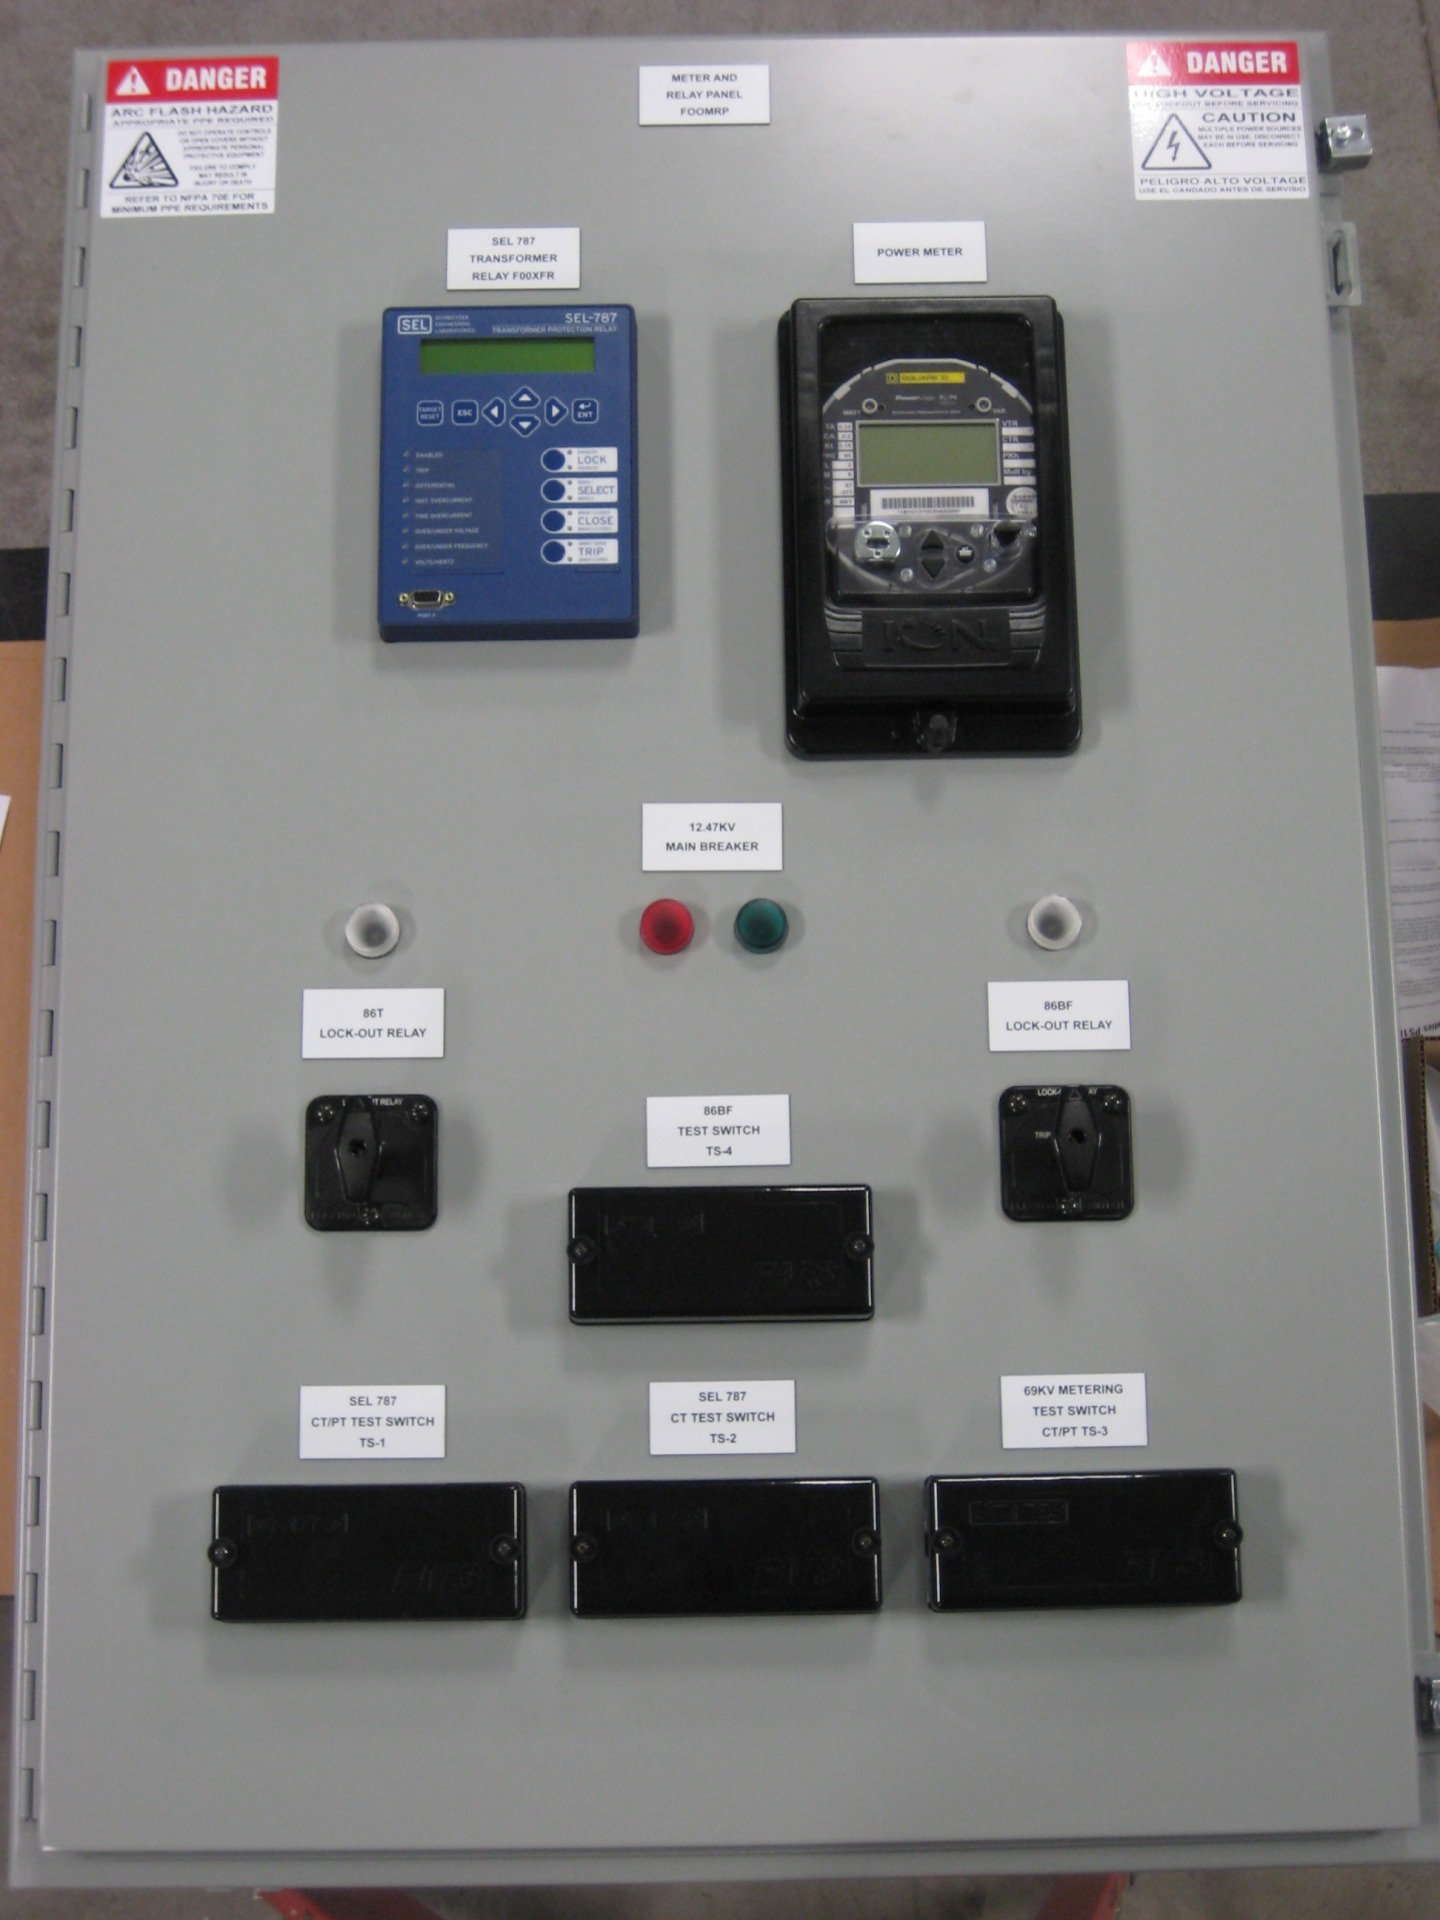 Hegwood Electric Industrial Automation Controls Panel Fabrication UL 508A CSA, AB, Allen Bradley, Siemens, Square D, GE, Telemecanique, Hoffman, Rittal